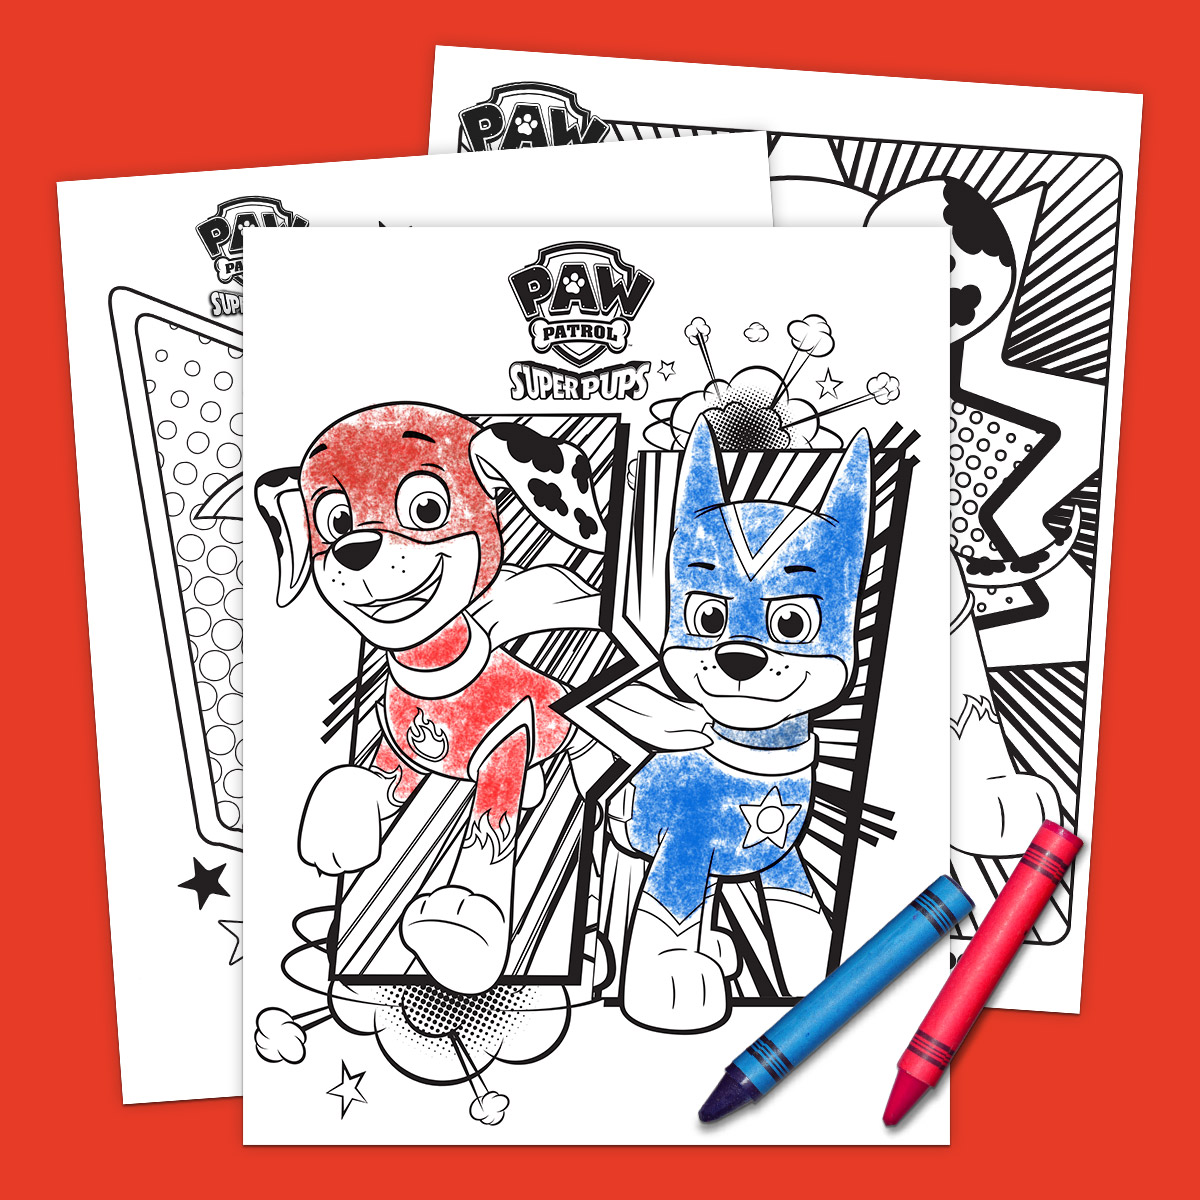 PAW Patrol Super Pups Coloring Pack